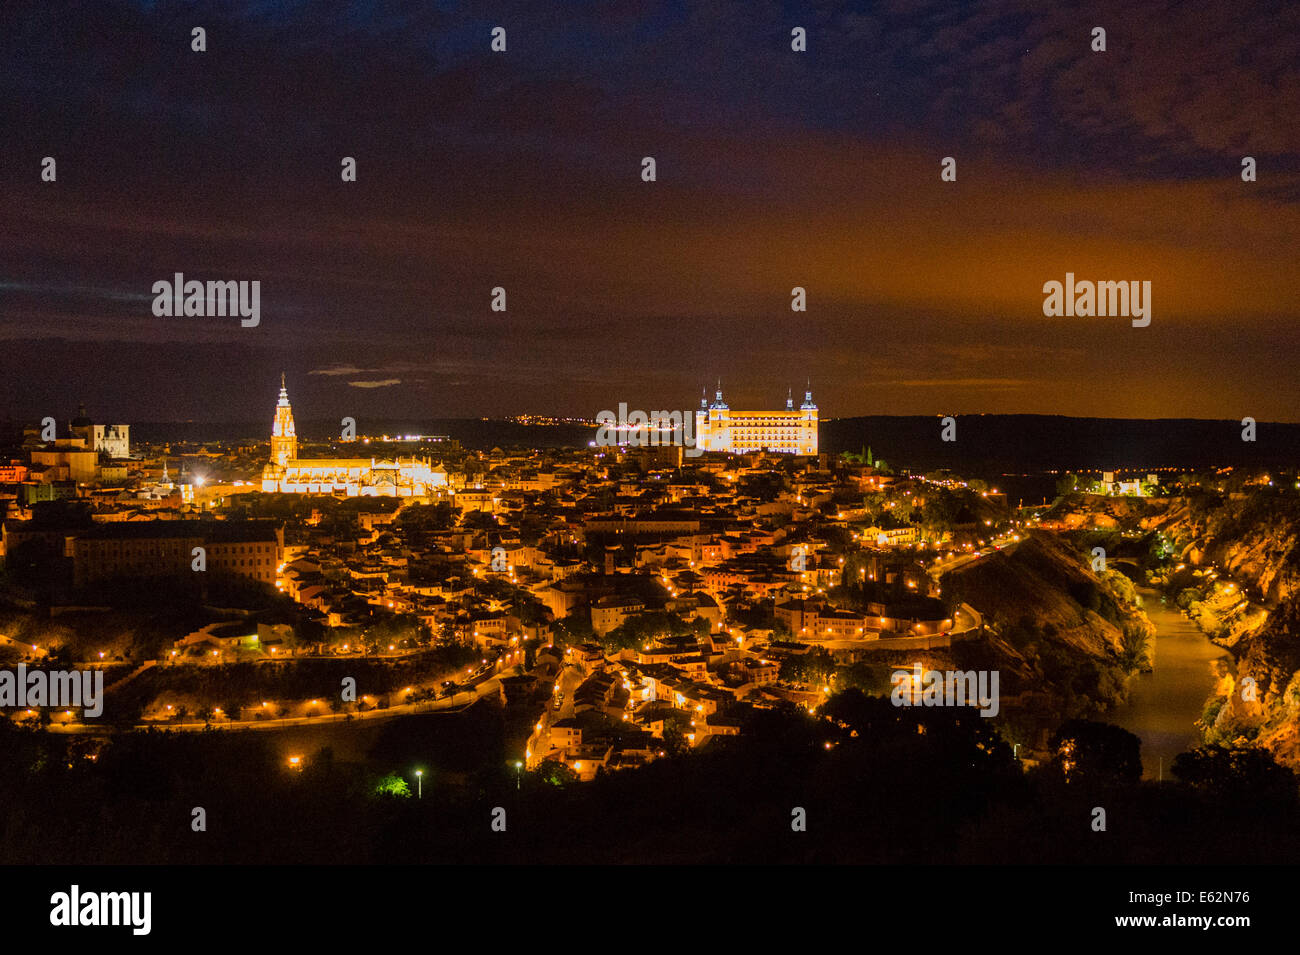 A view of Toledo from the Emperor's Hill - Stock Image